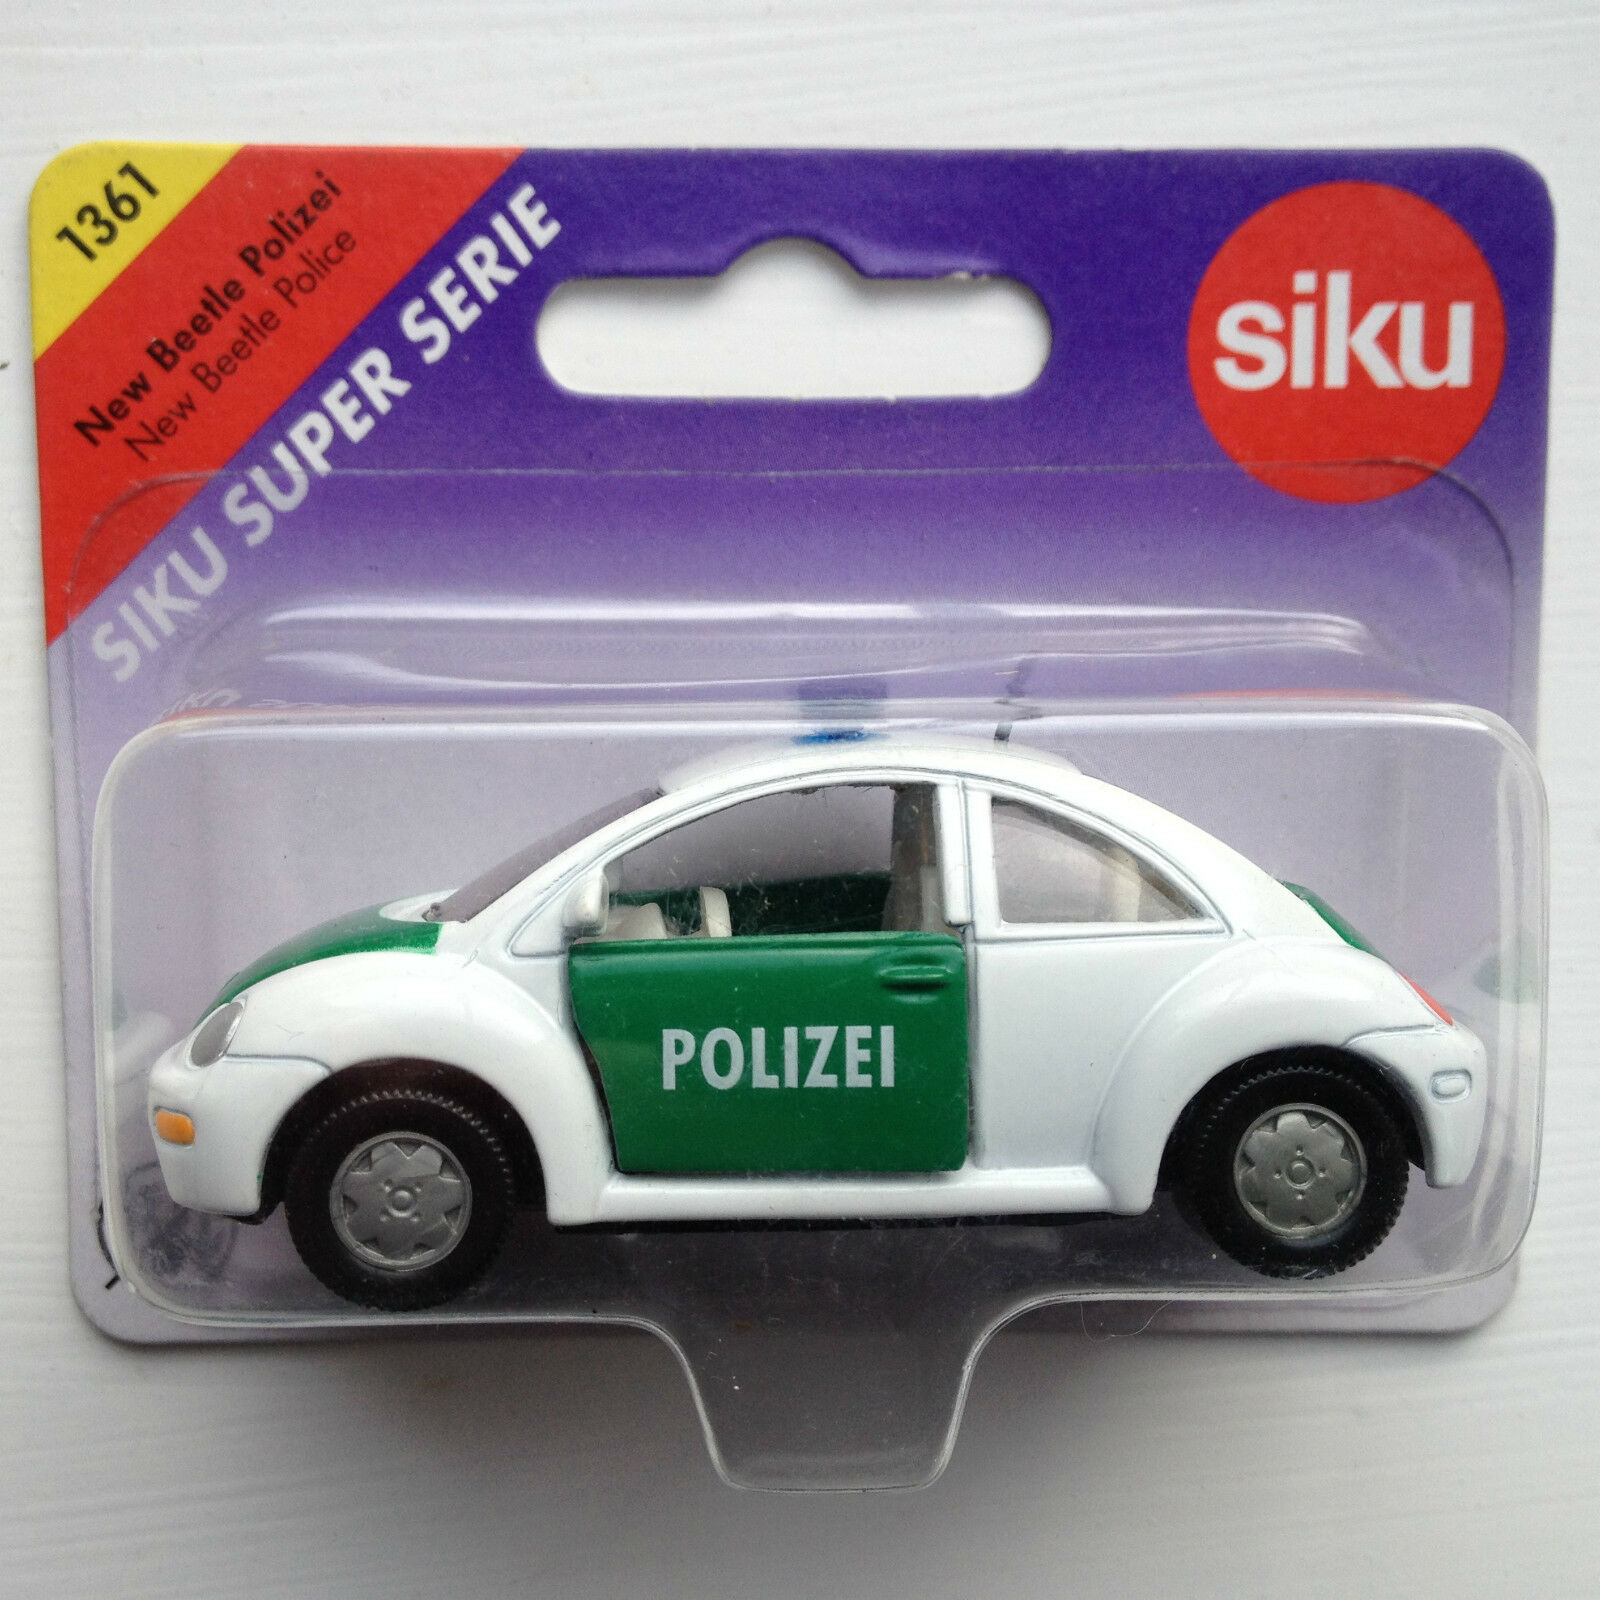 Siku 1361 VW VW VW New Beetle Polizei-Bianco/Verde f36626